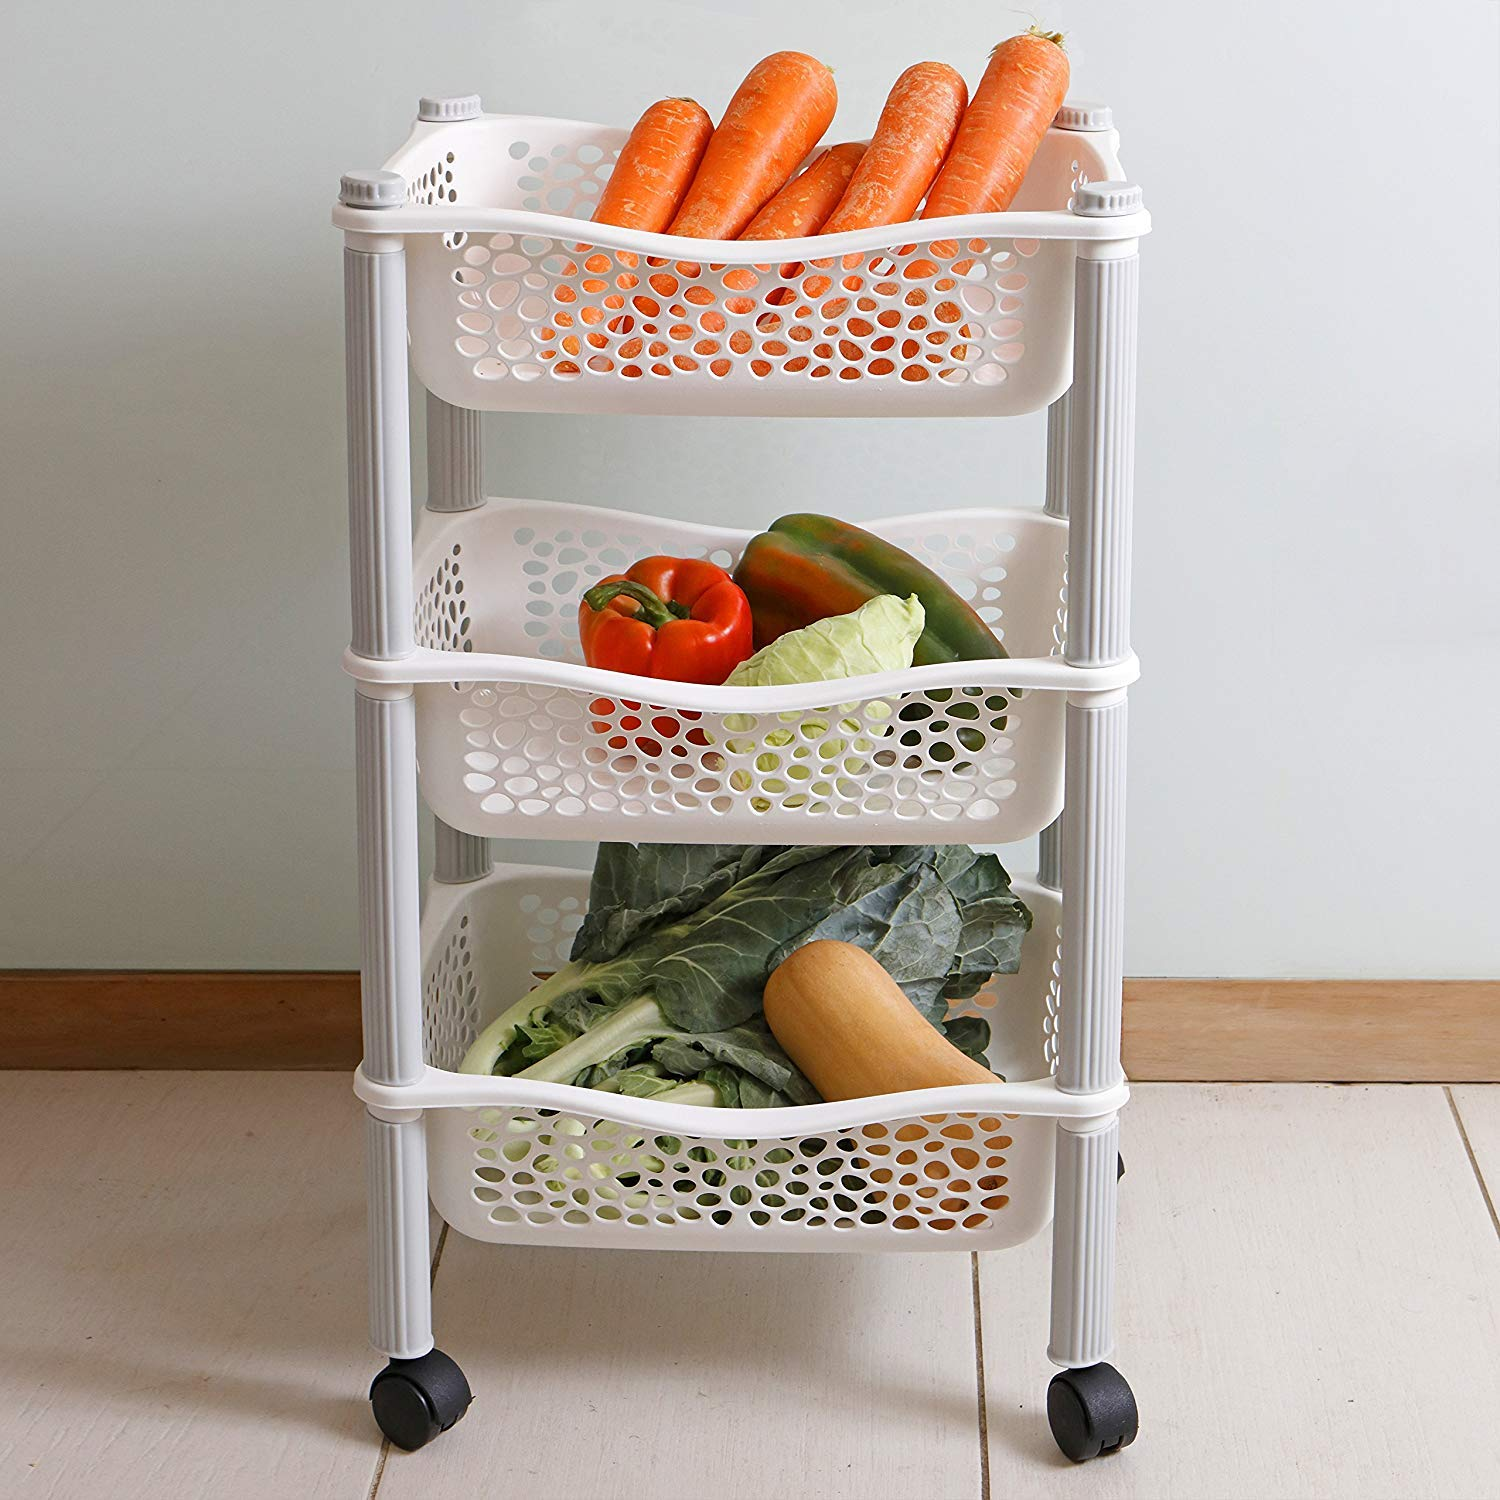 Kitchen Storage Trolley cart with Storage Baskets and Wheels Fruit Vegetable Rack Heavy Duty Plastic White